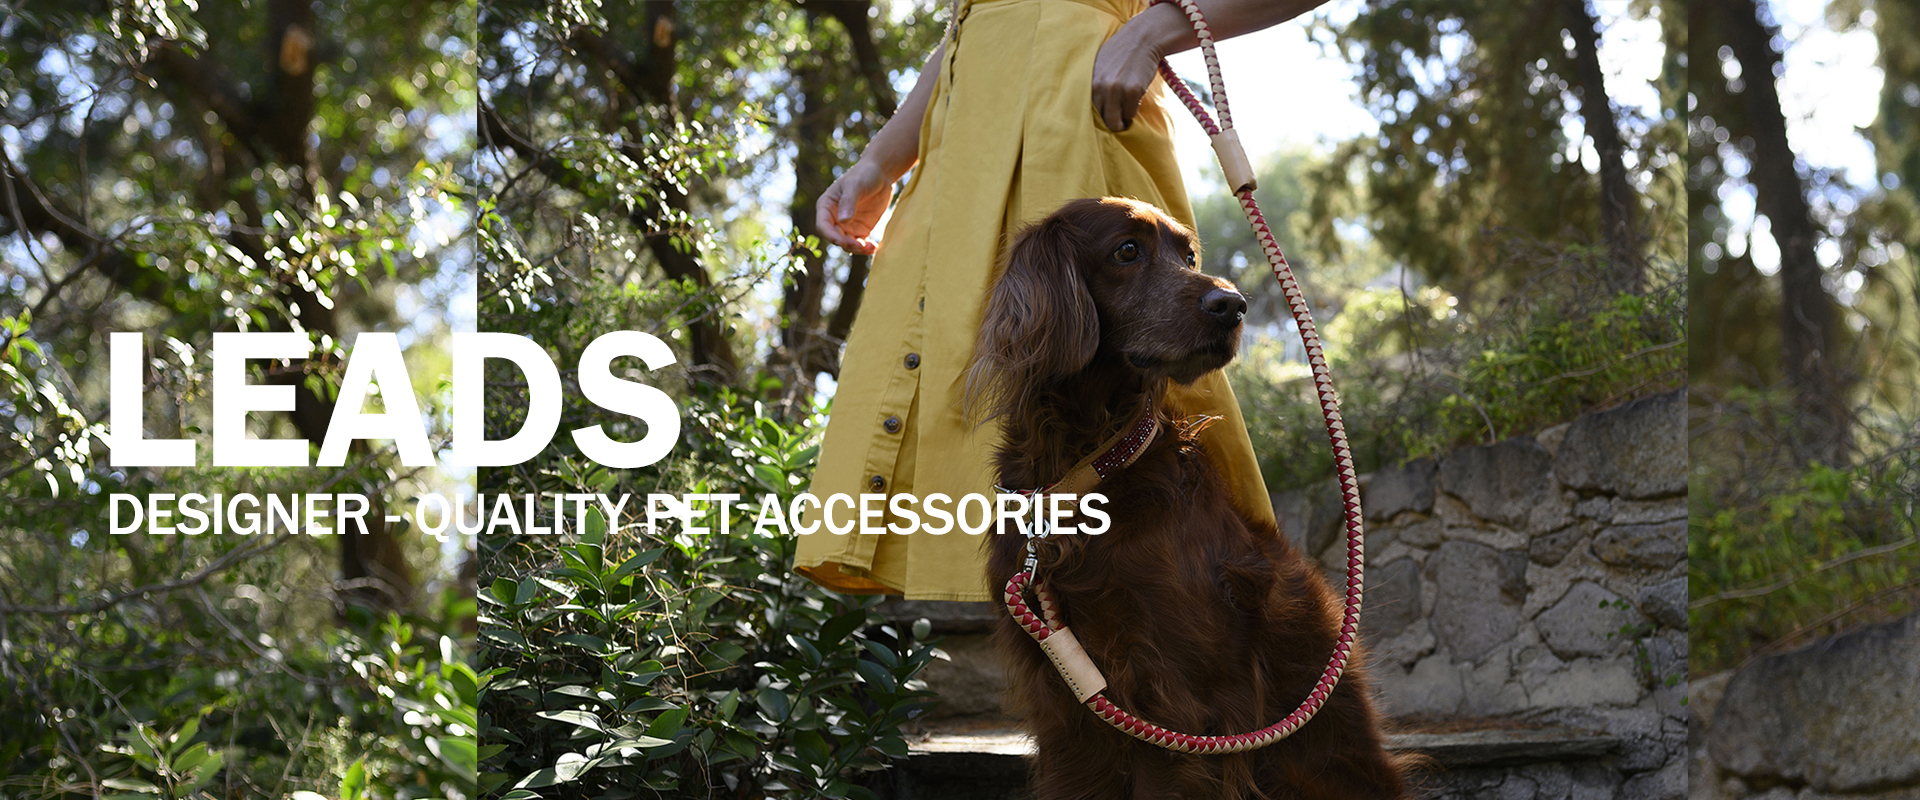 Leads | Designer-quality pet accessories by zikos